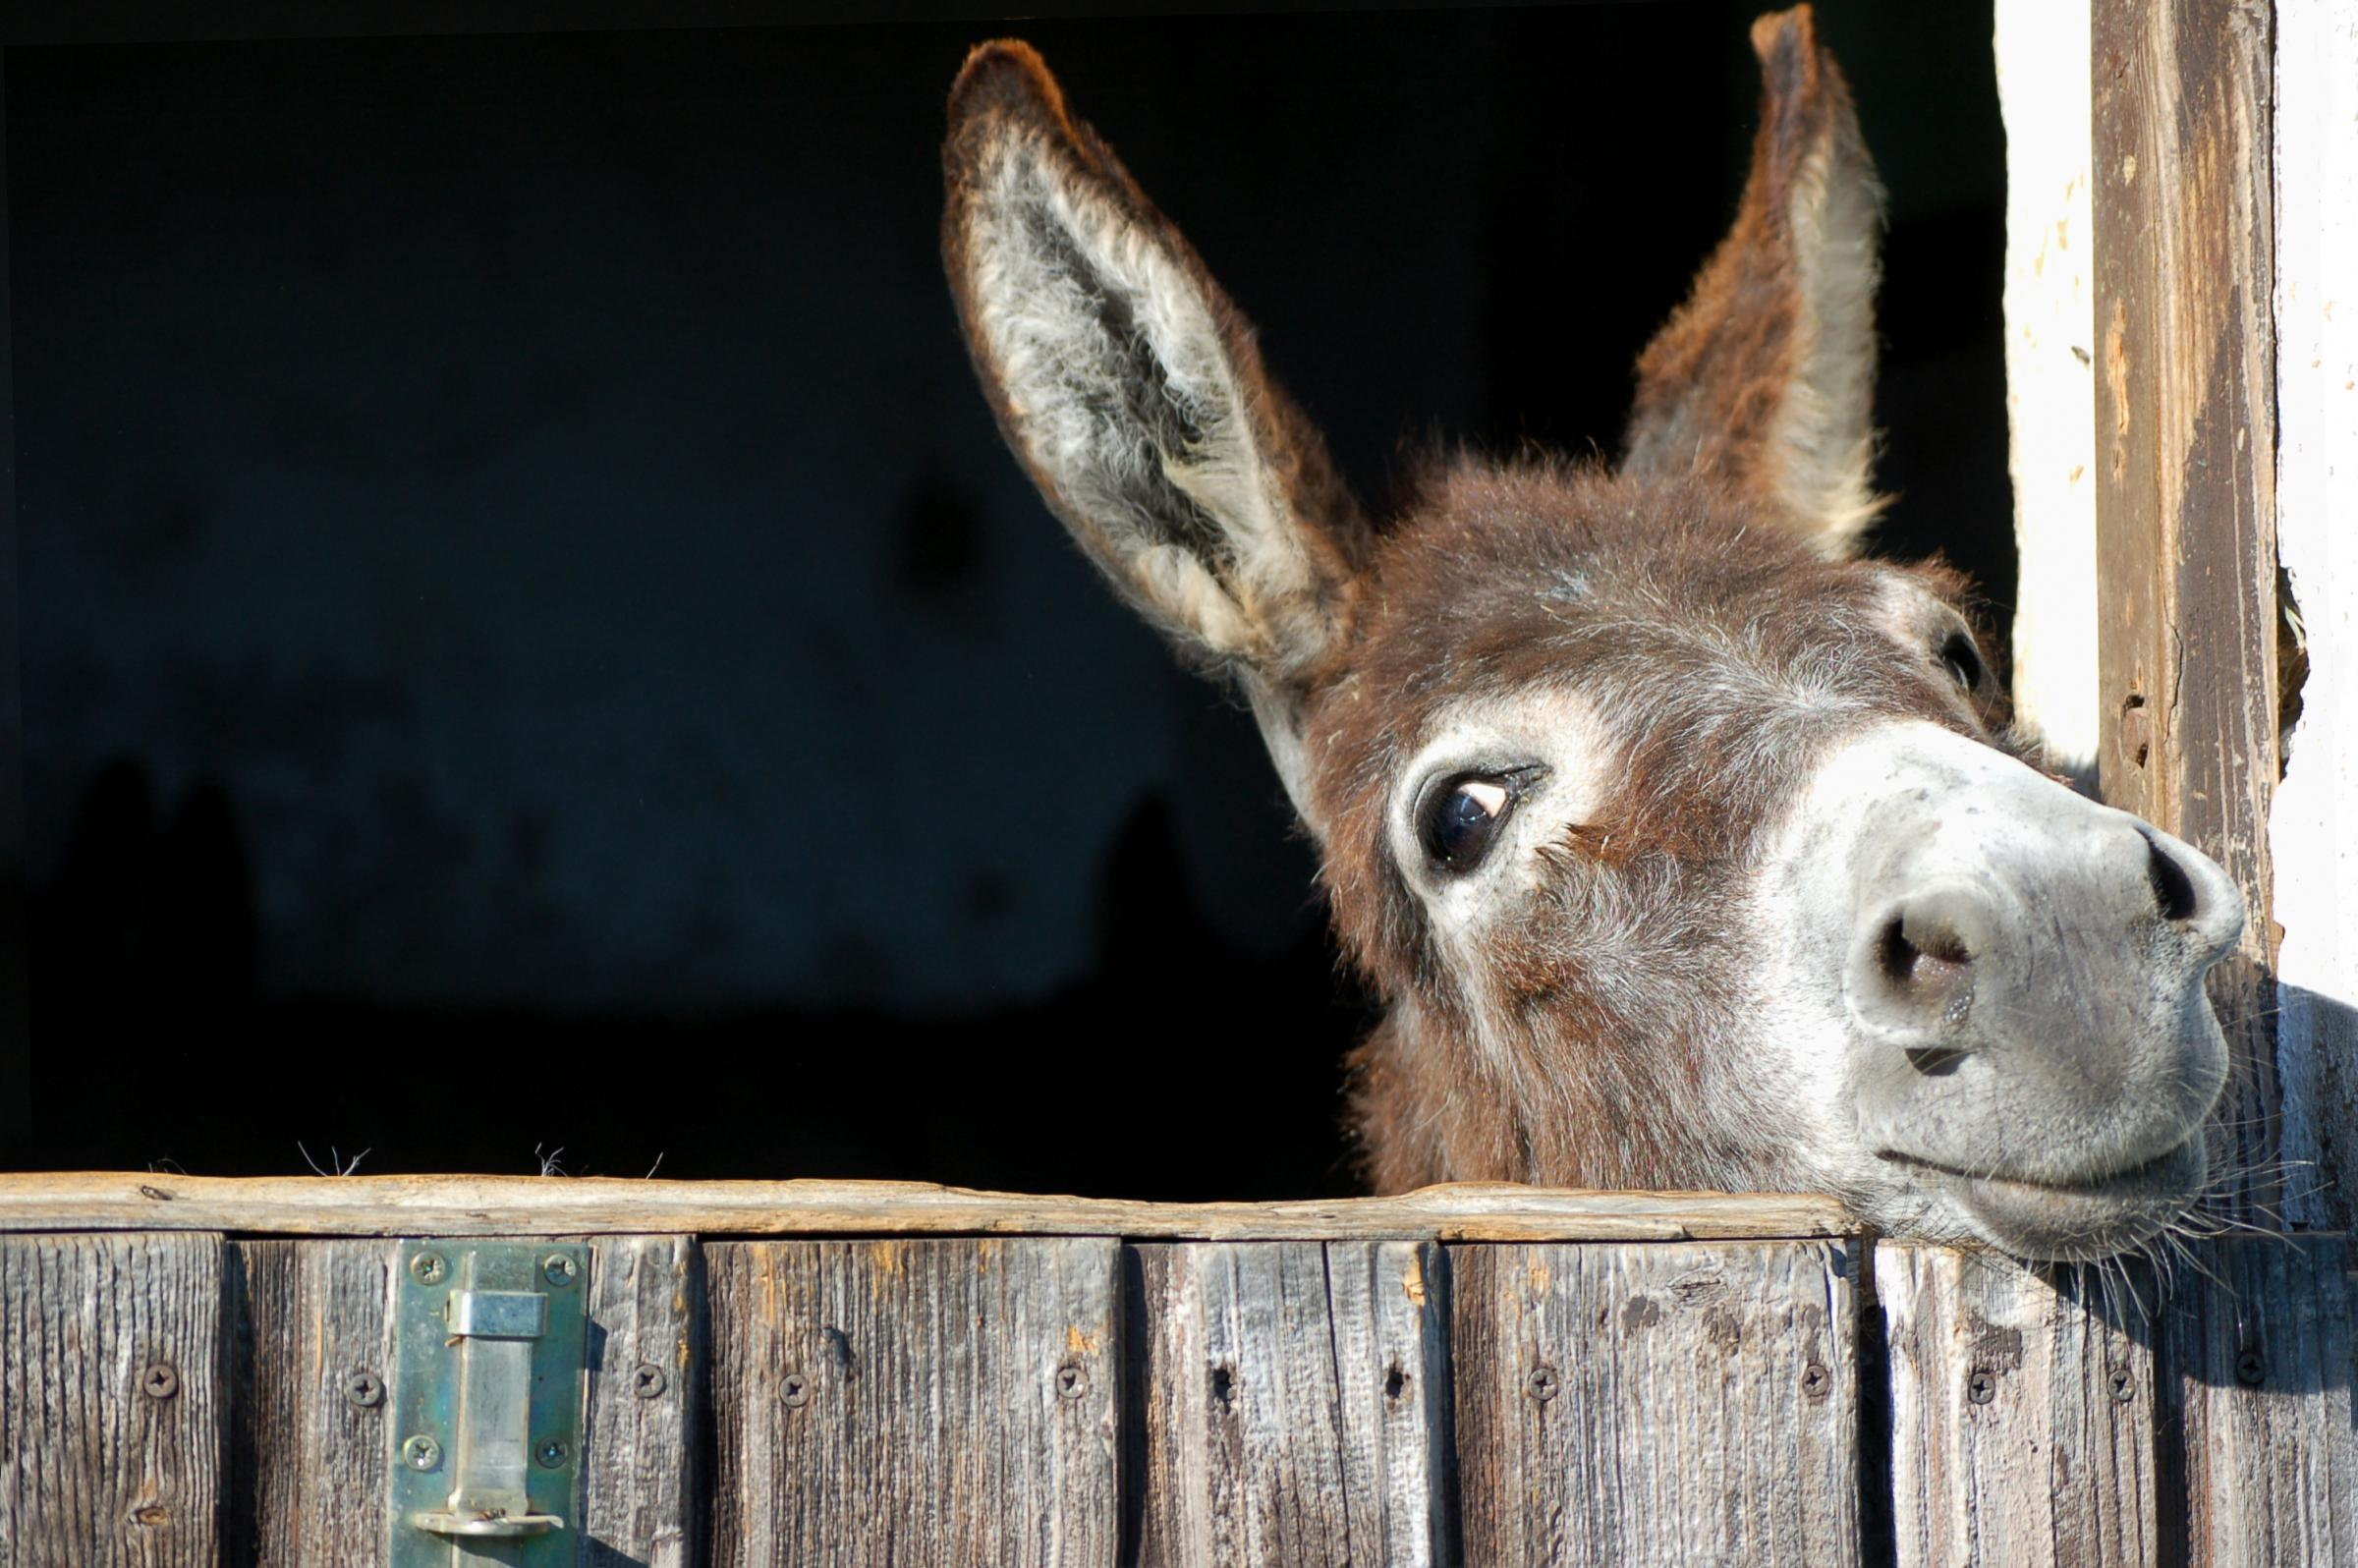 Donkeys are excellent on a smallholding and love company